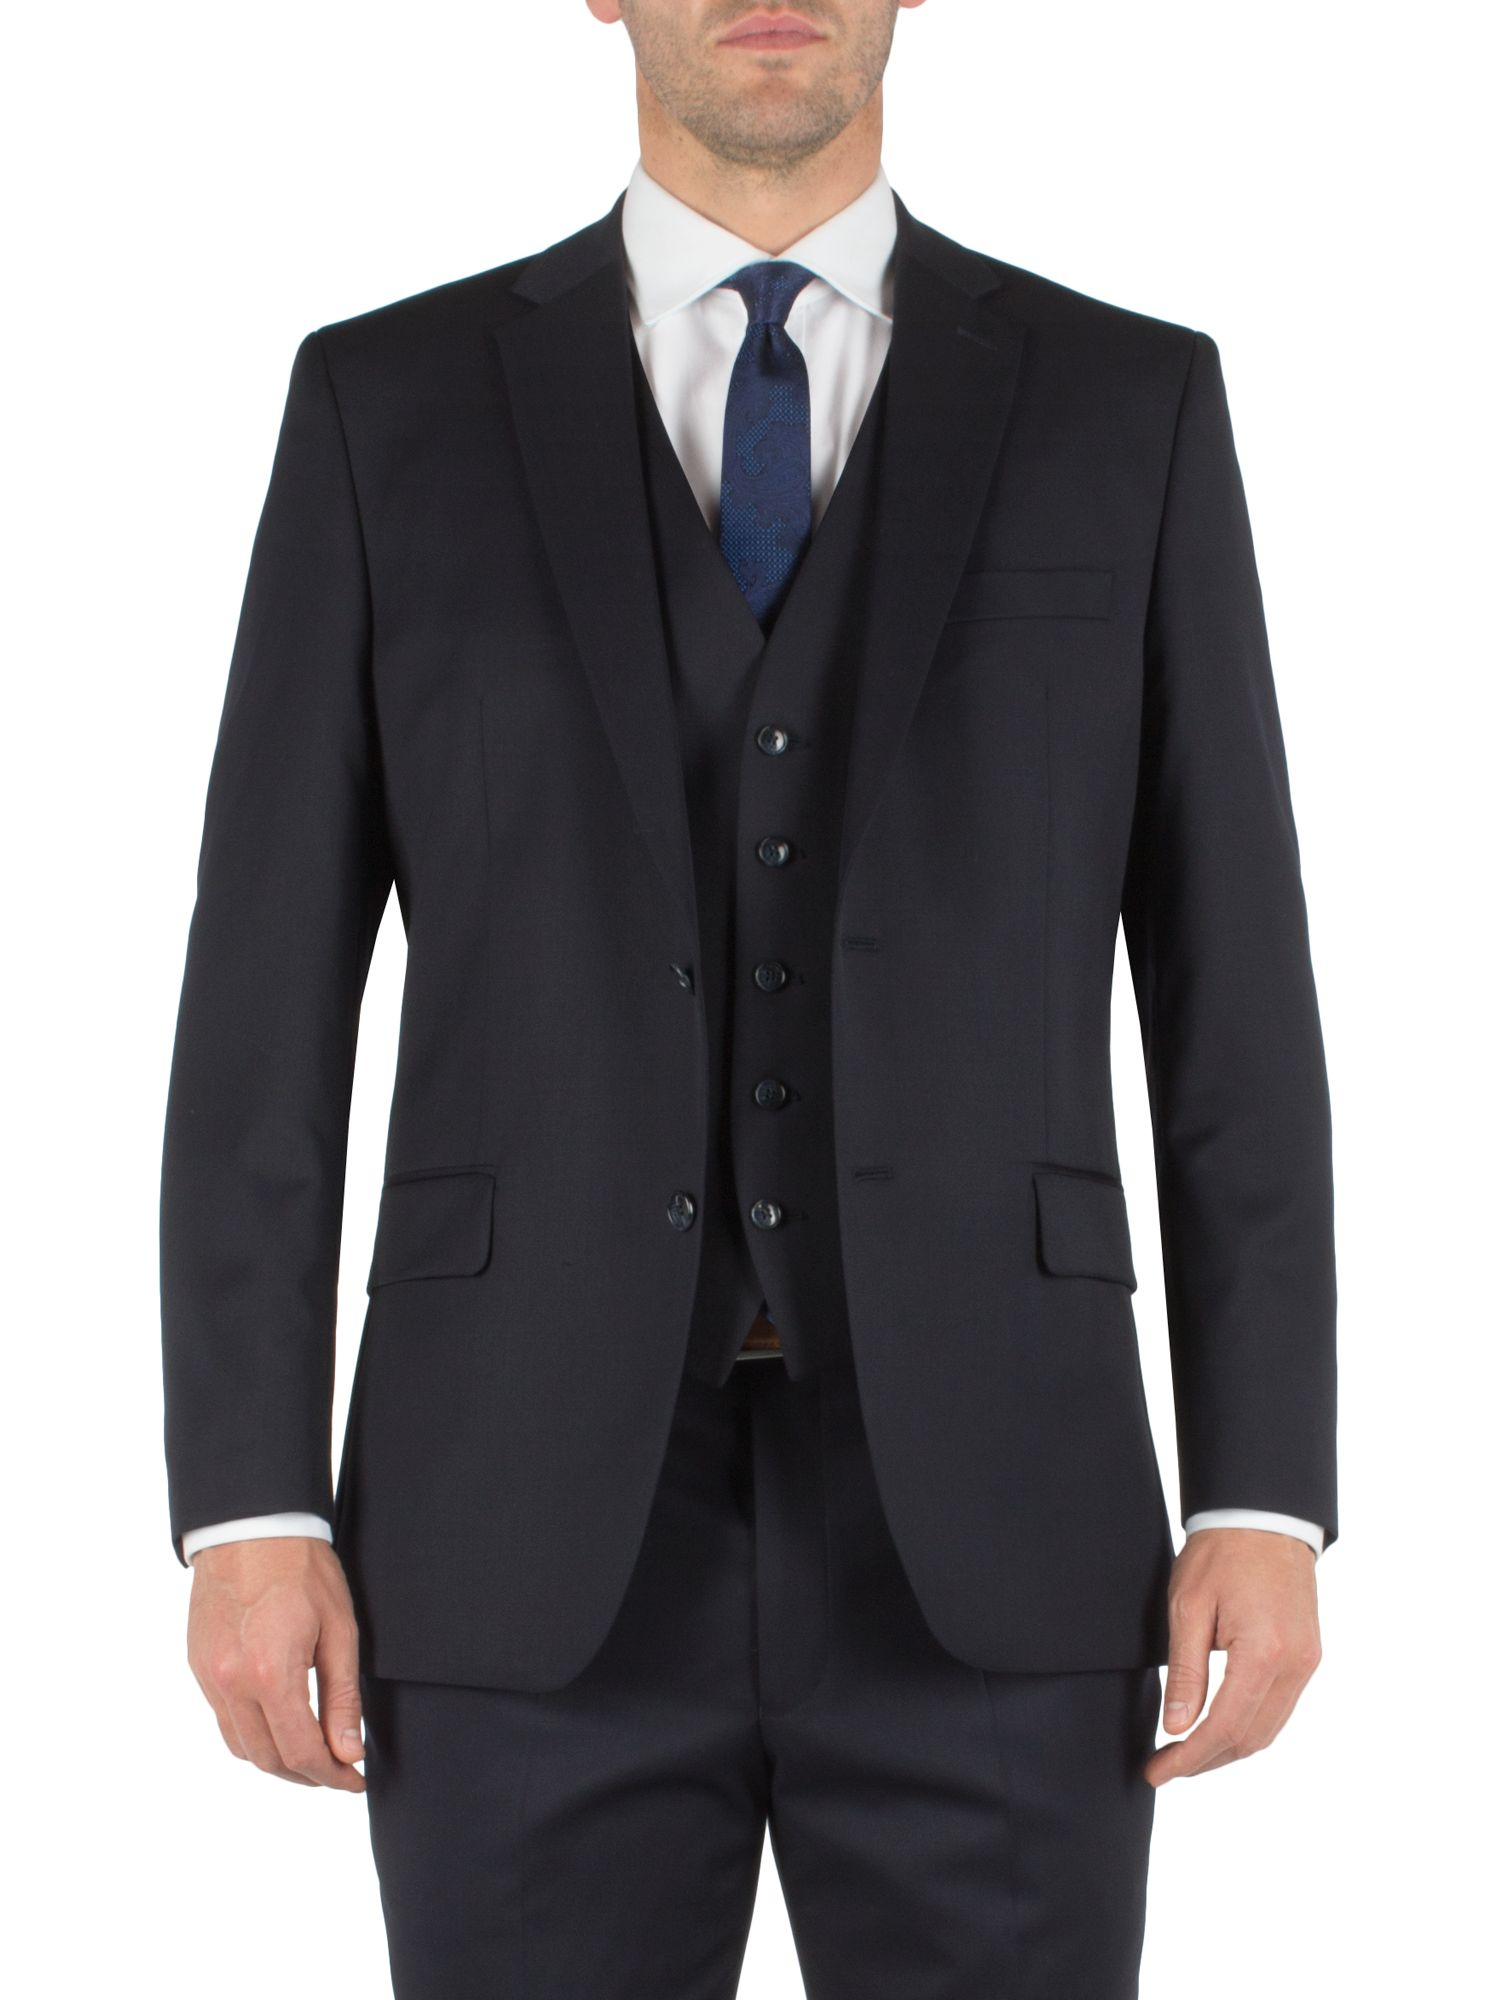 Twill single breasted suit jacket